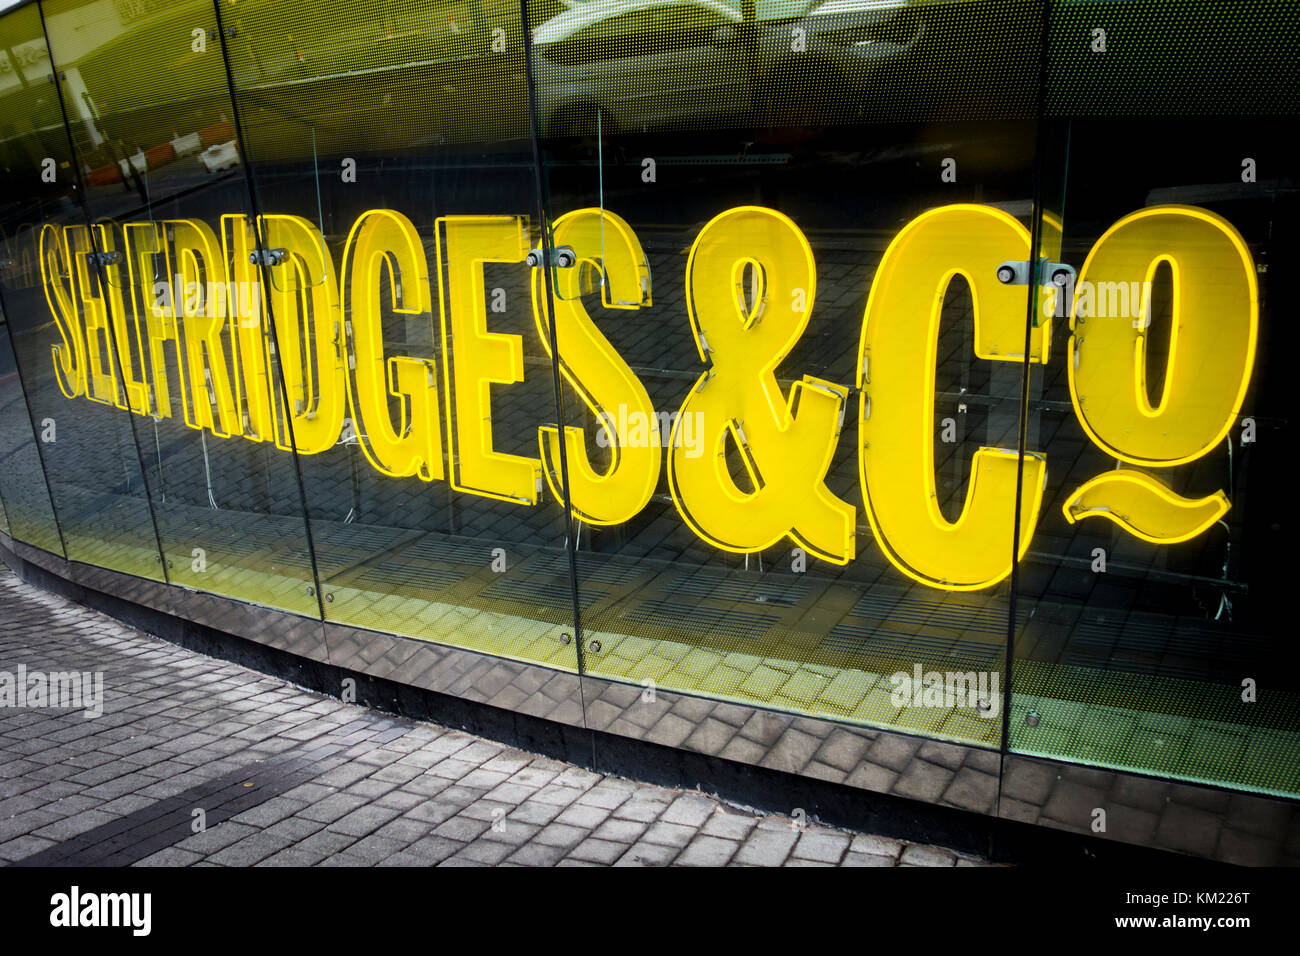 Logo and sign outside Selfridges & Co building by architects Future Systems, part of the Bullring Shopping Centre - Stock Image